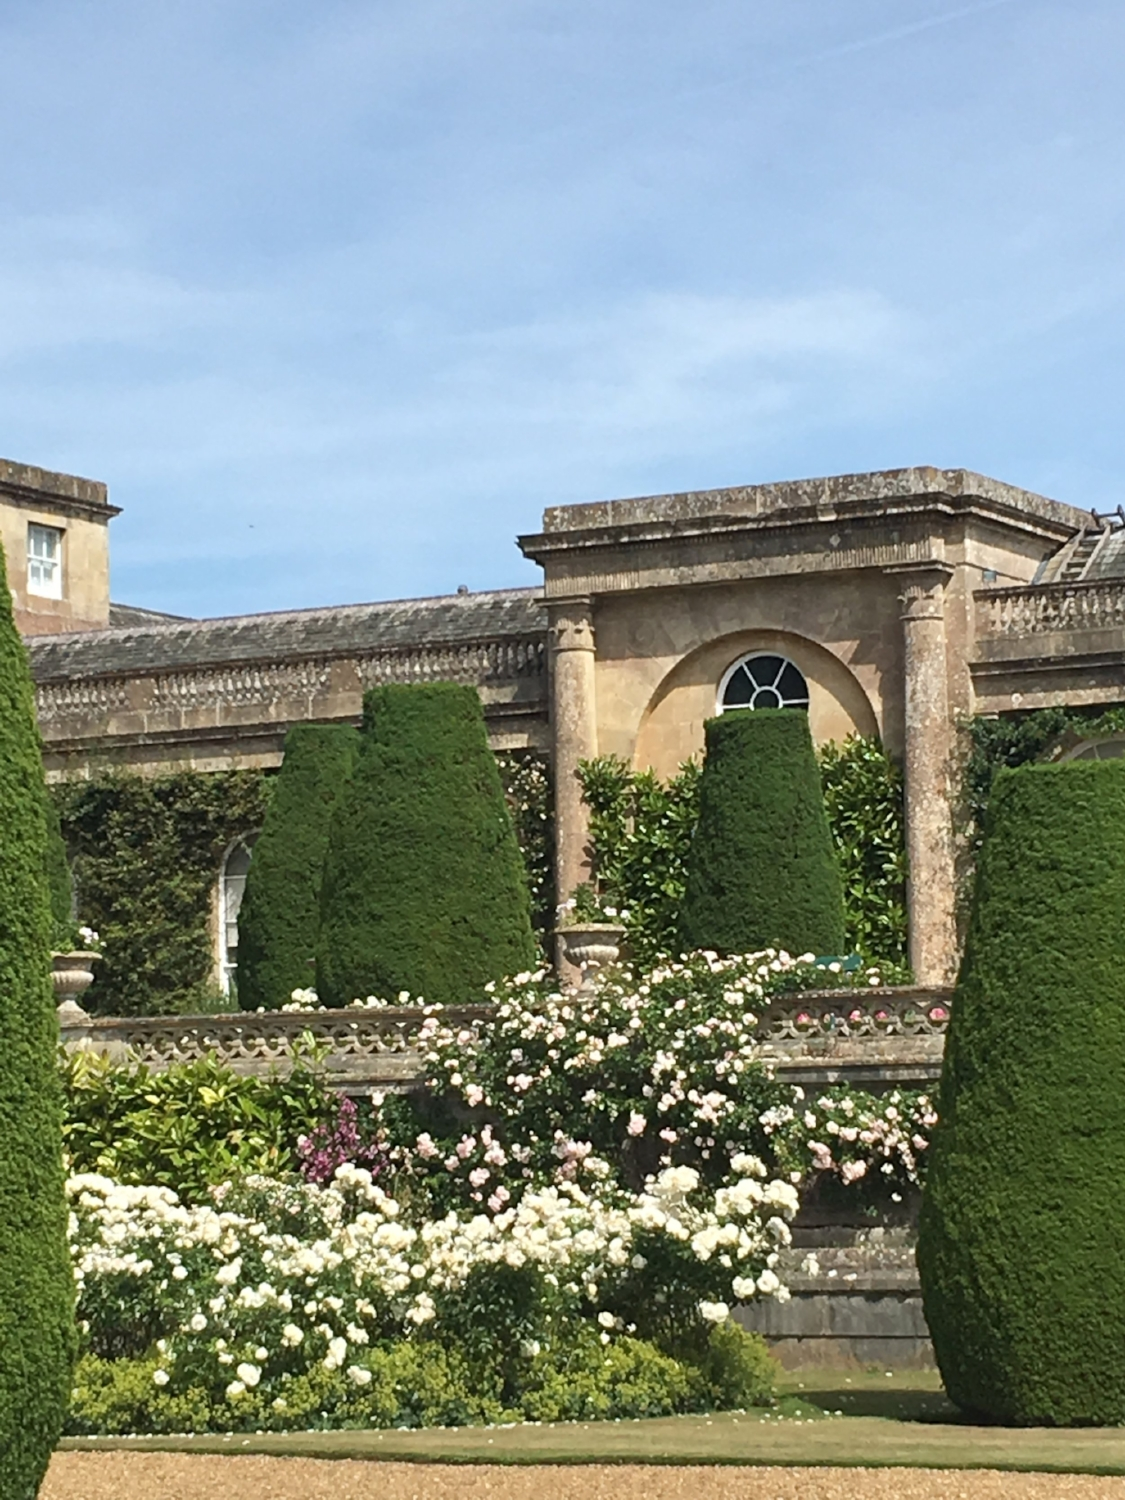 The grounds at Bowood House